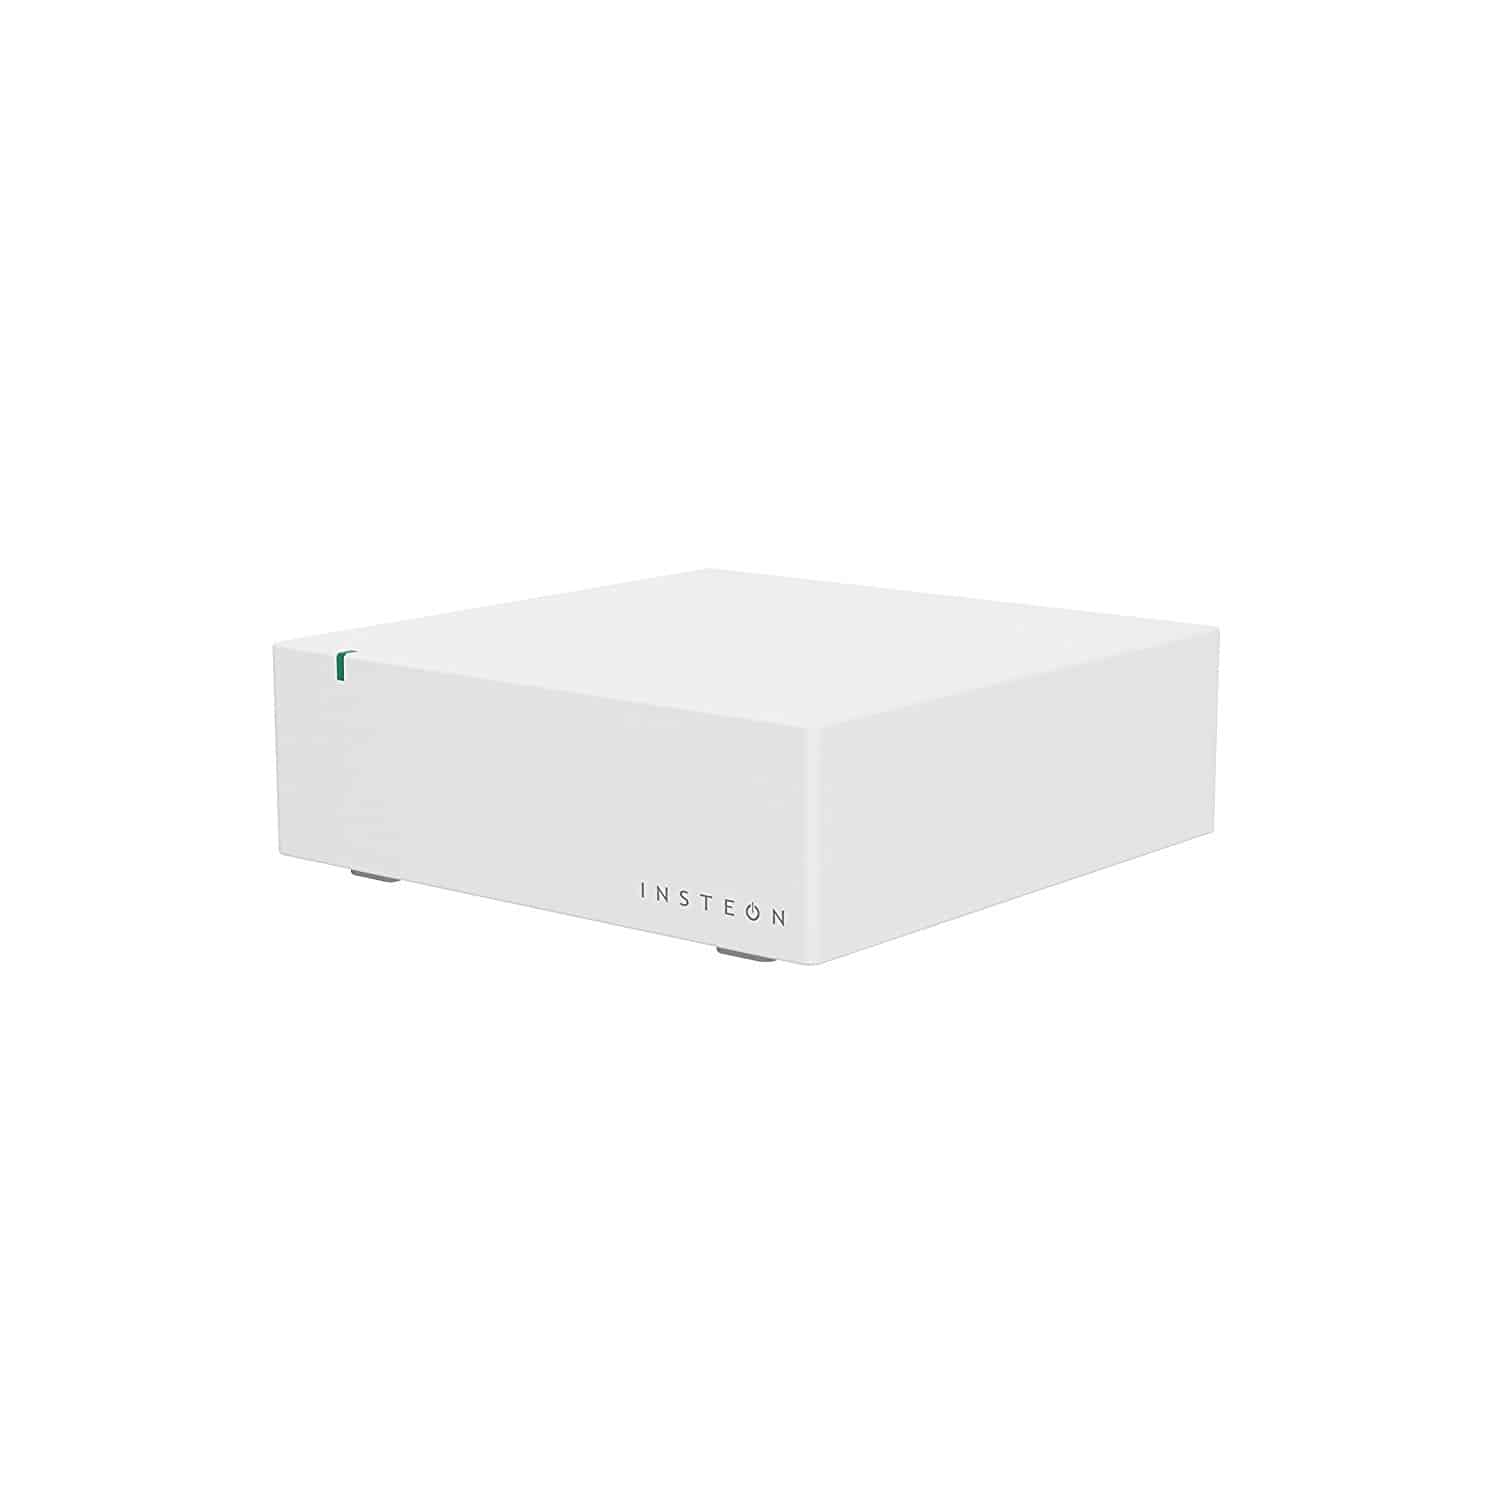 Home Automation Hub Reviews is the smartthings smart home hub a good deal? and is it better